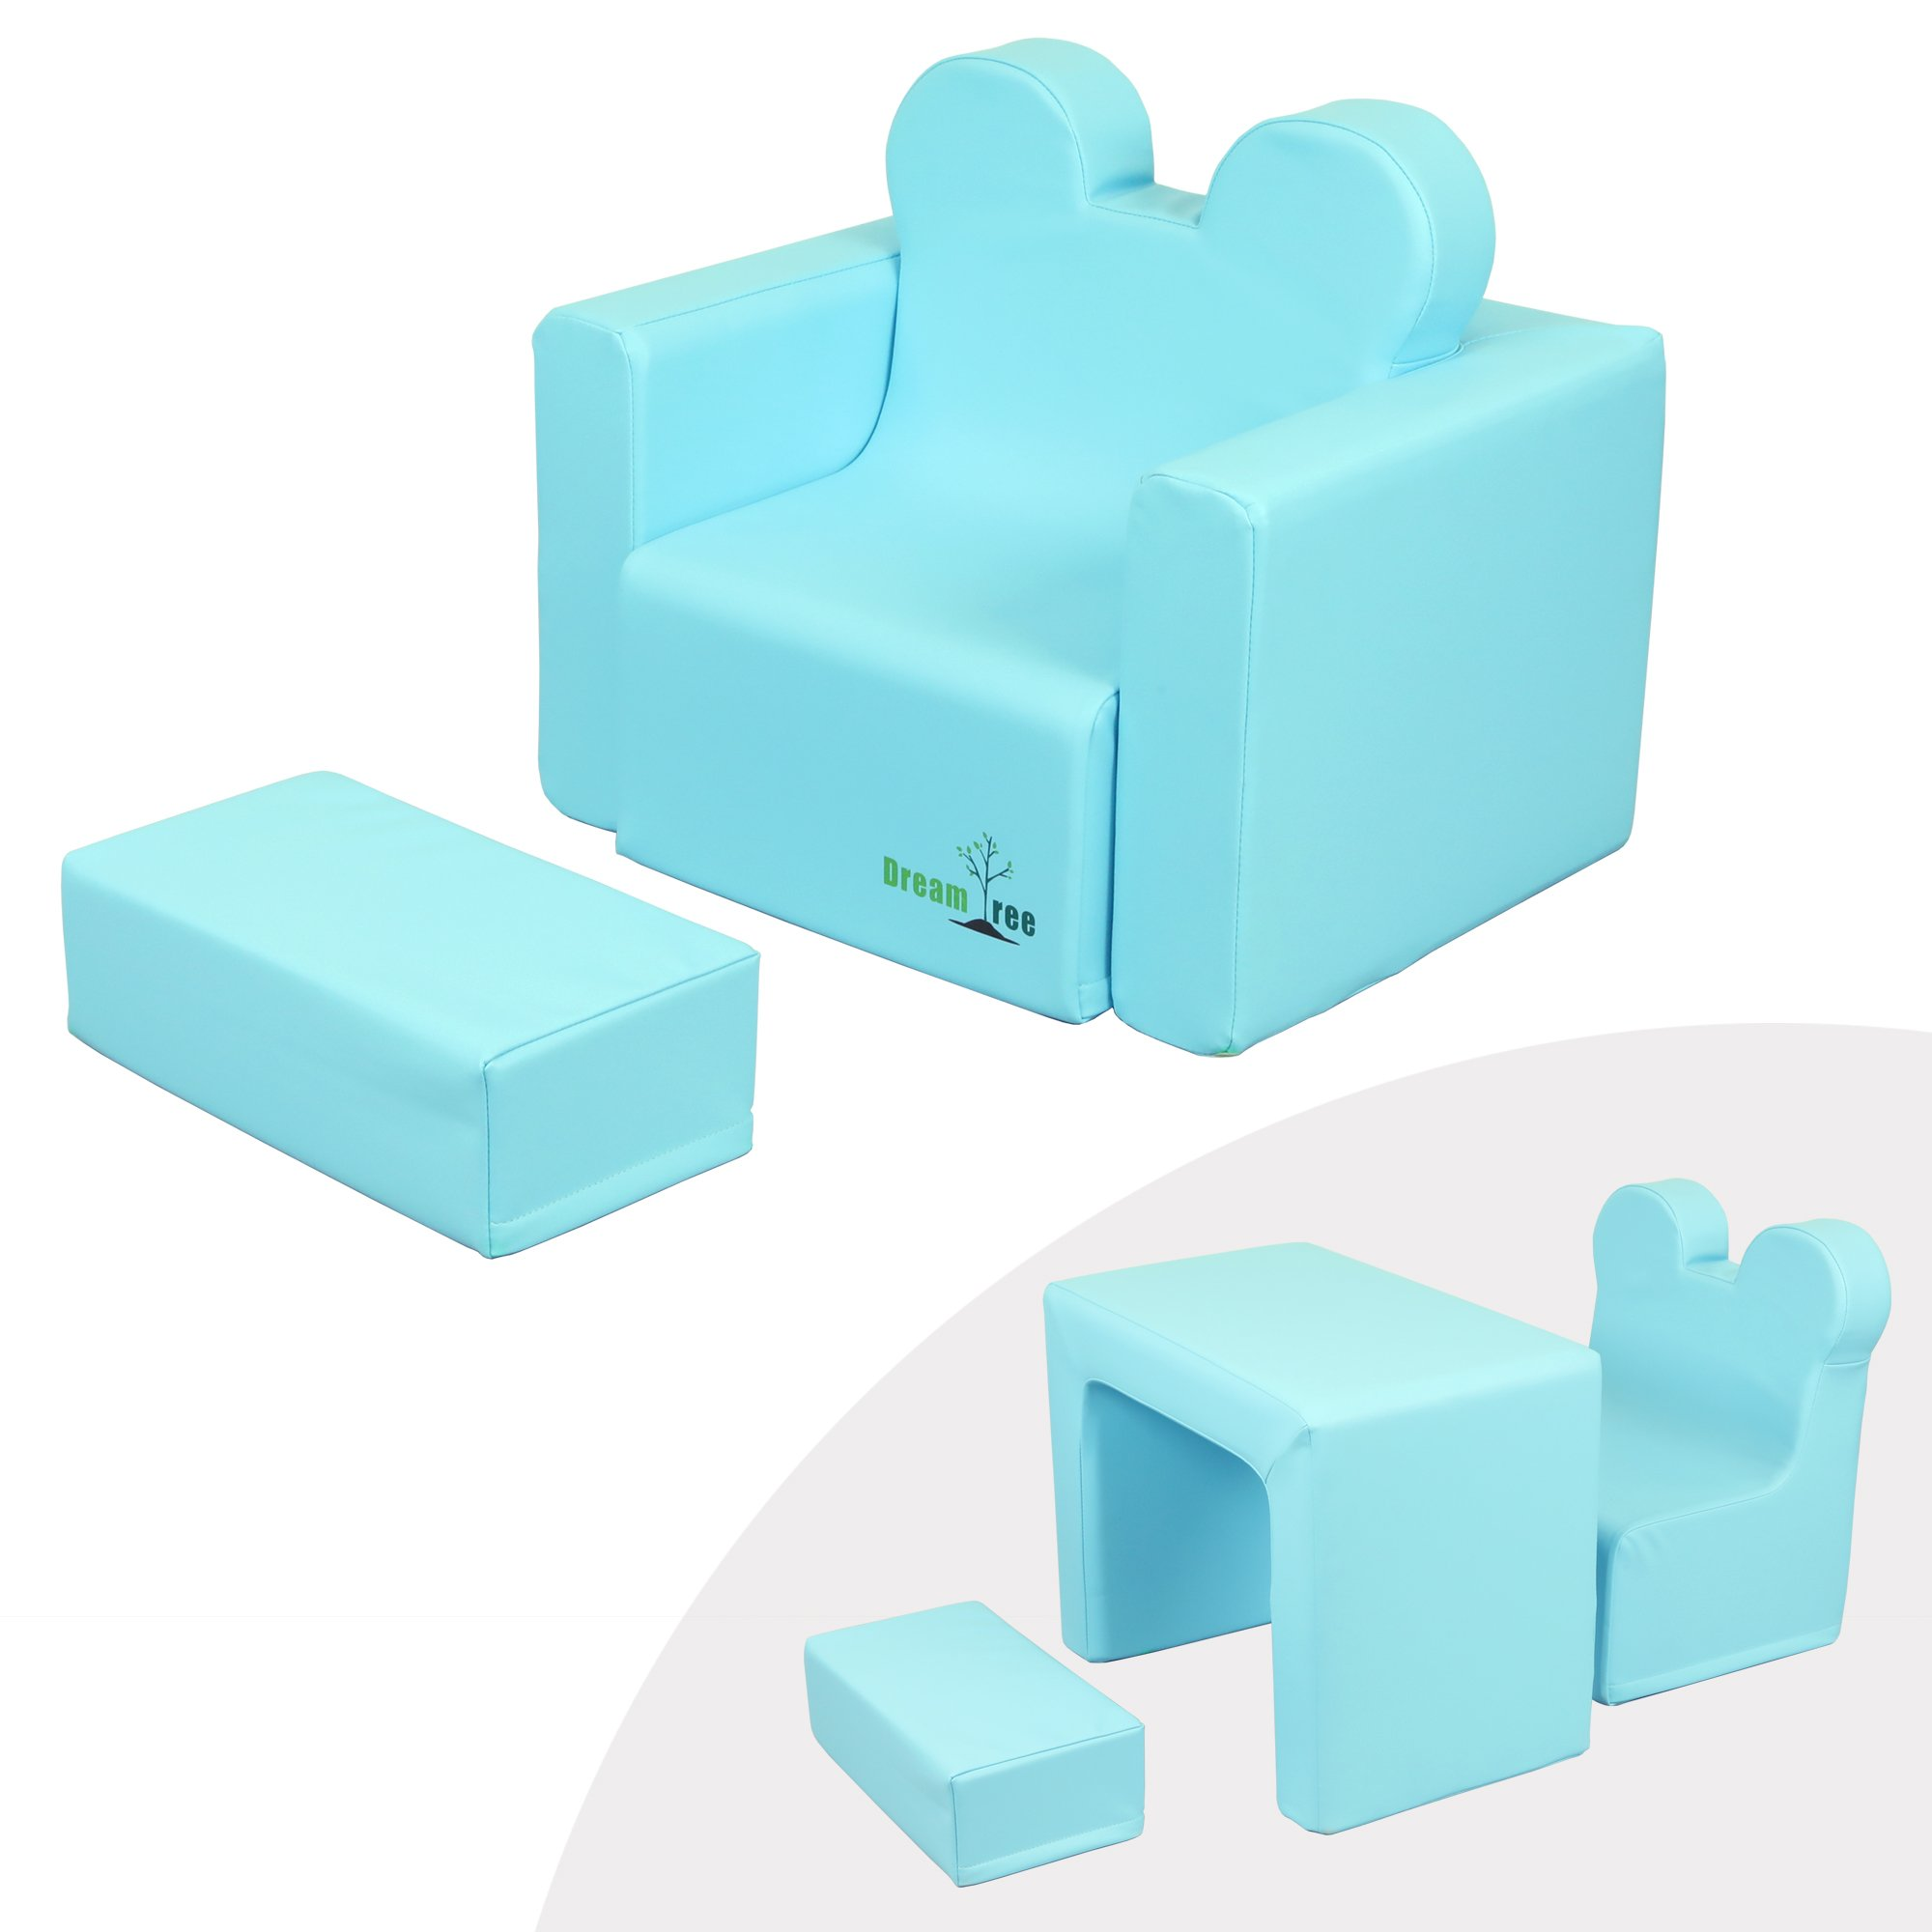 Dream Tree Toddler Table and Chair Set (Sofa Type) Washable, Safe Non-Toxic CPSIA Compliant Soft Foam Furniture for Baby, Kids, and Child - Blue